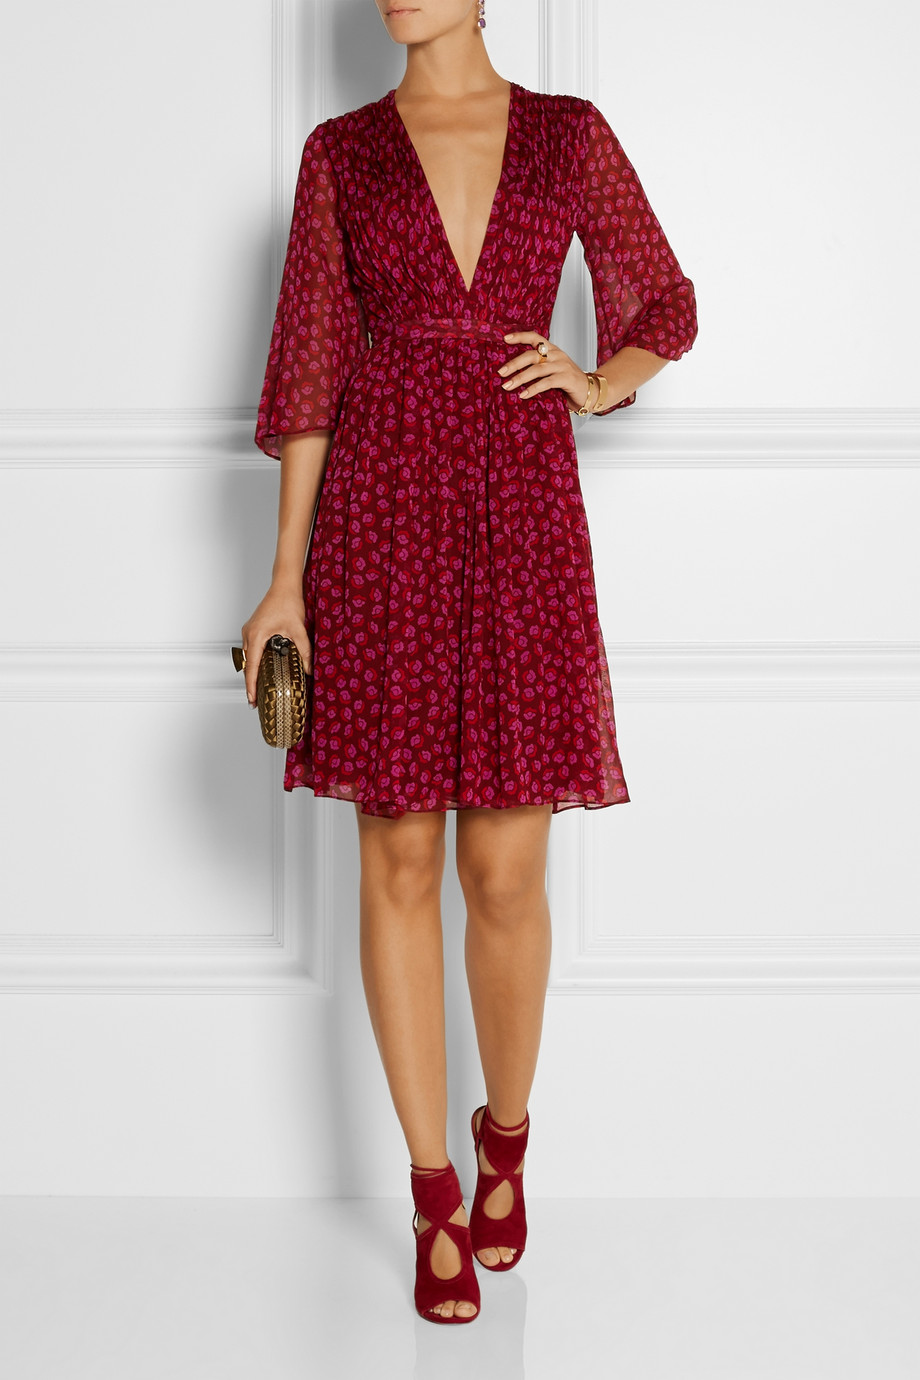 Fancy friday diane von furstenberg wrap dresses for Diane von furstenberg clothes